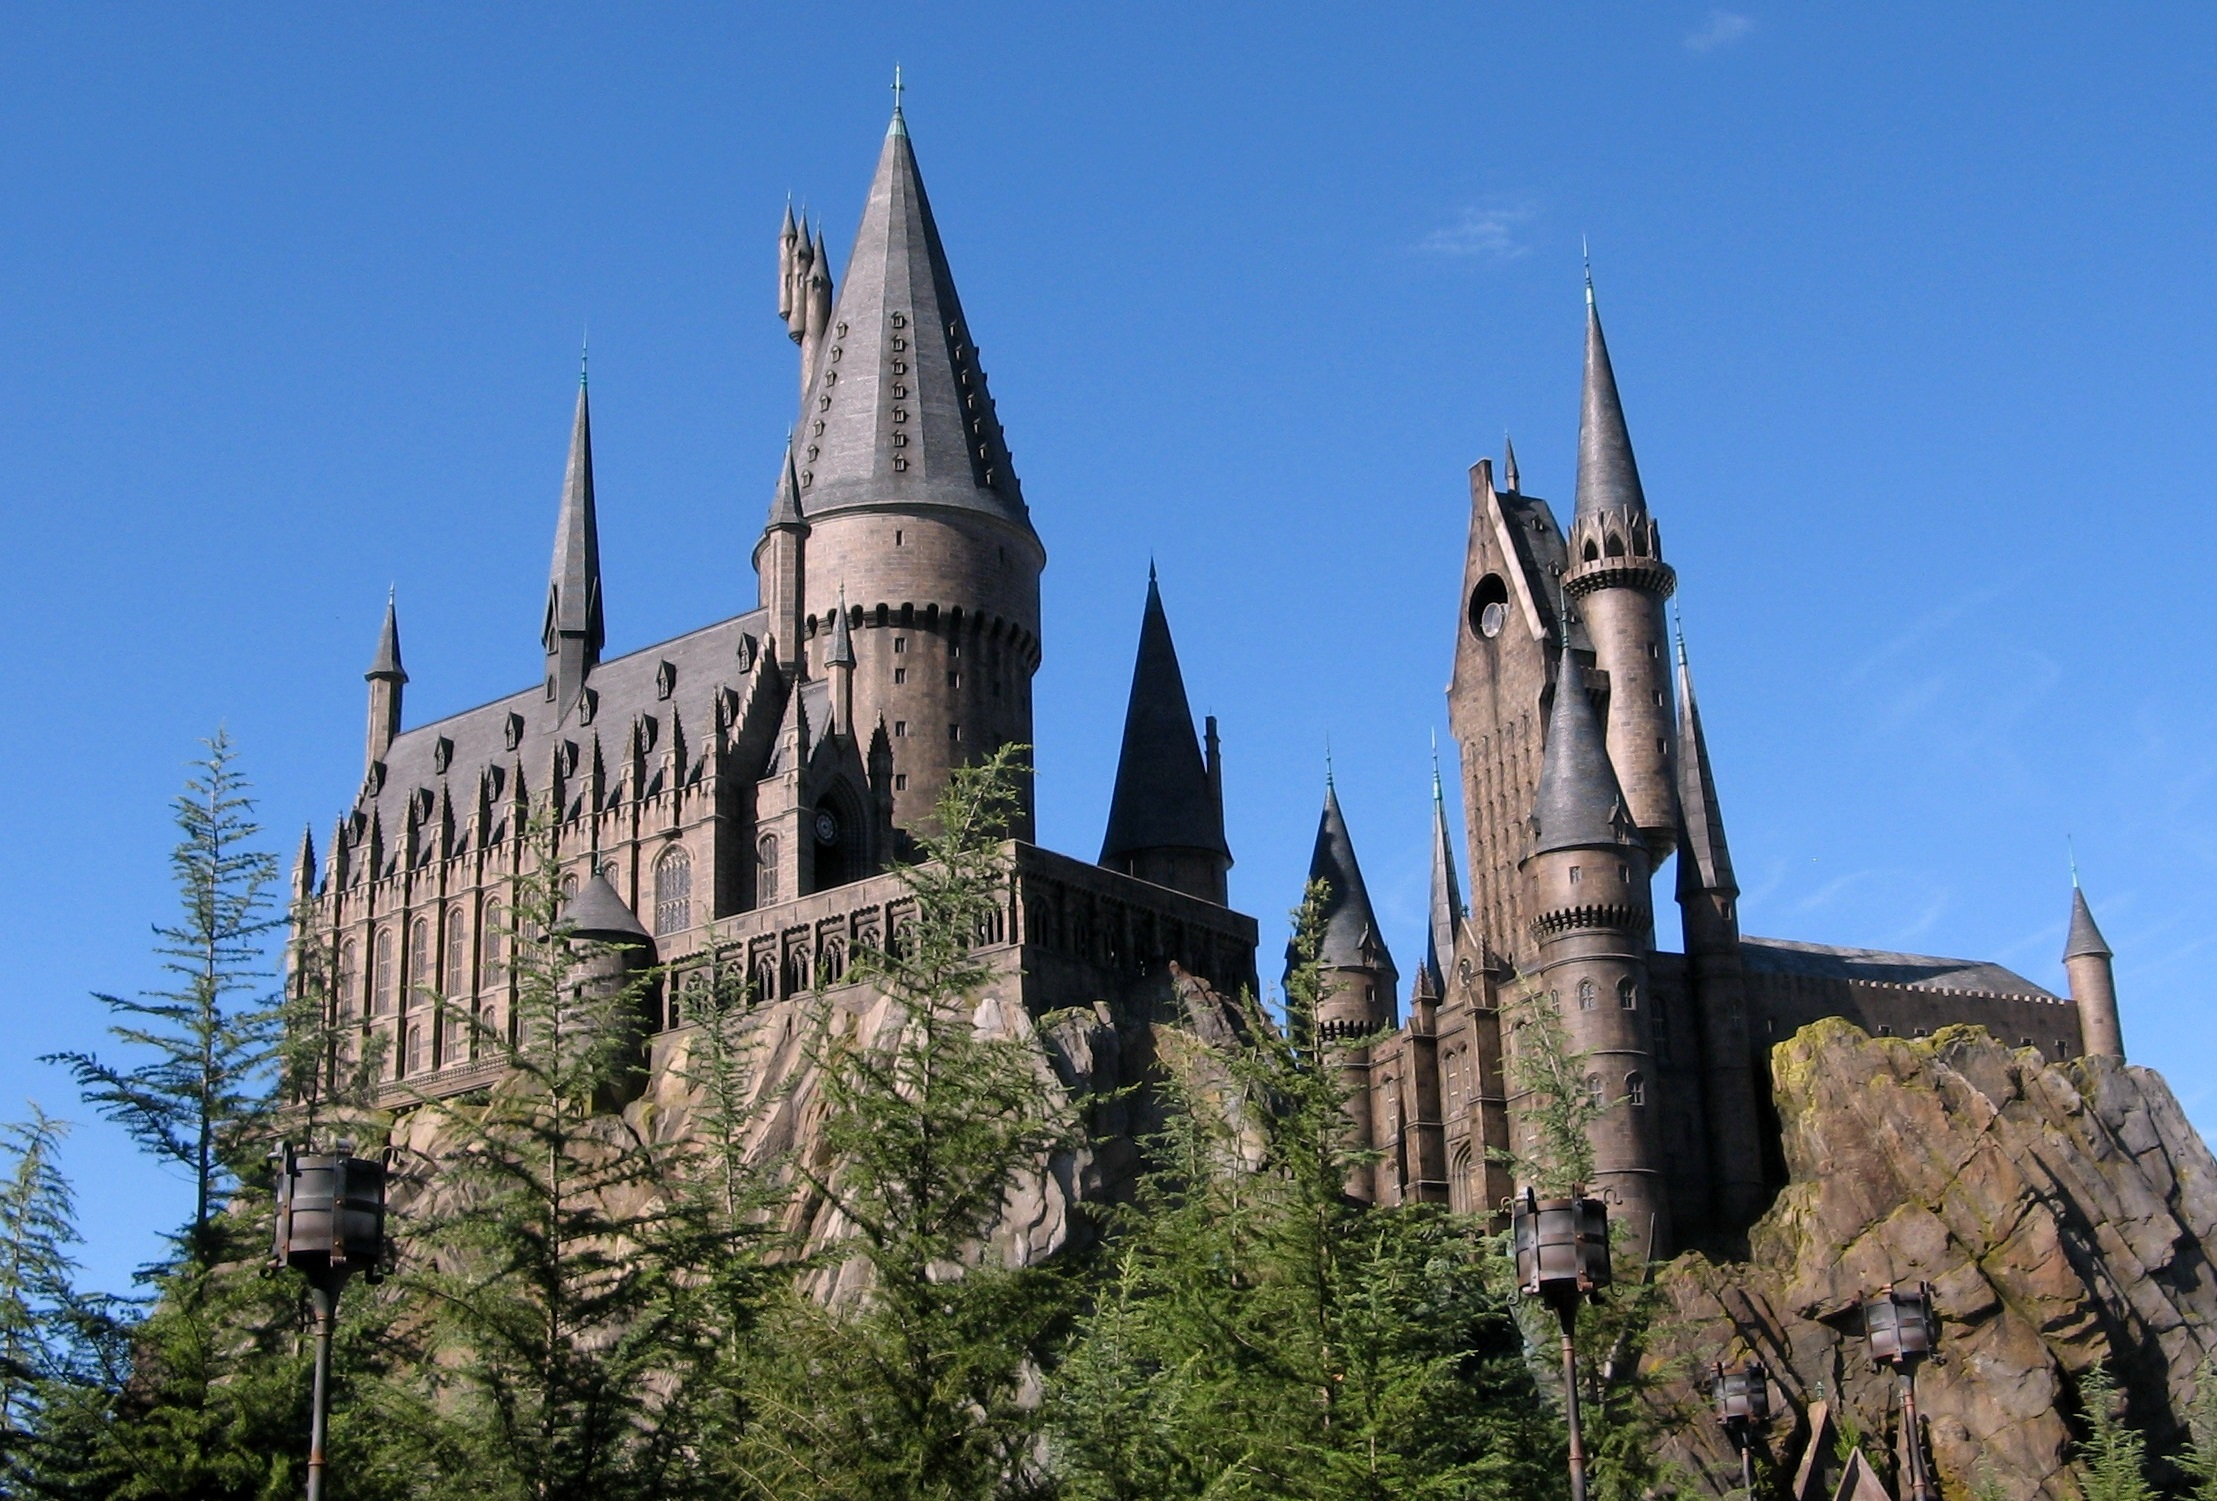 Description Wizarding World of Harry Potter Castle.jpg